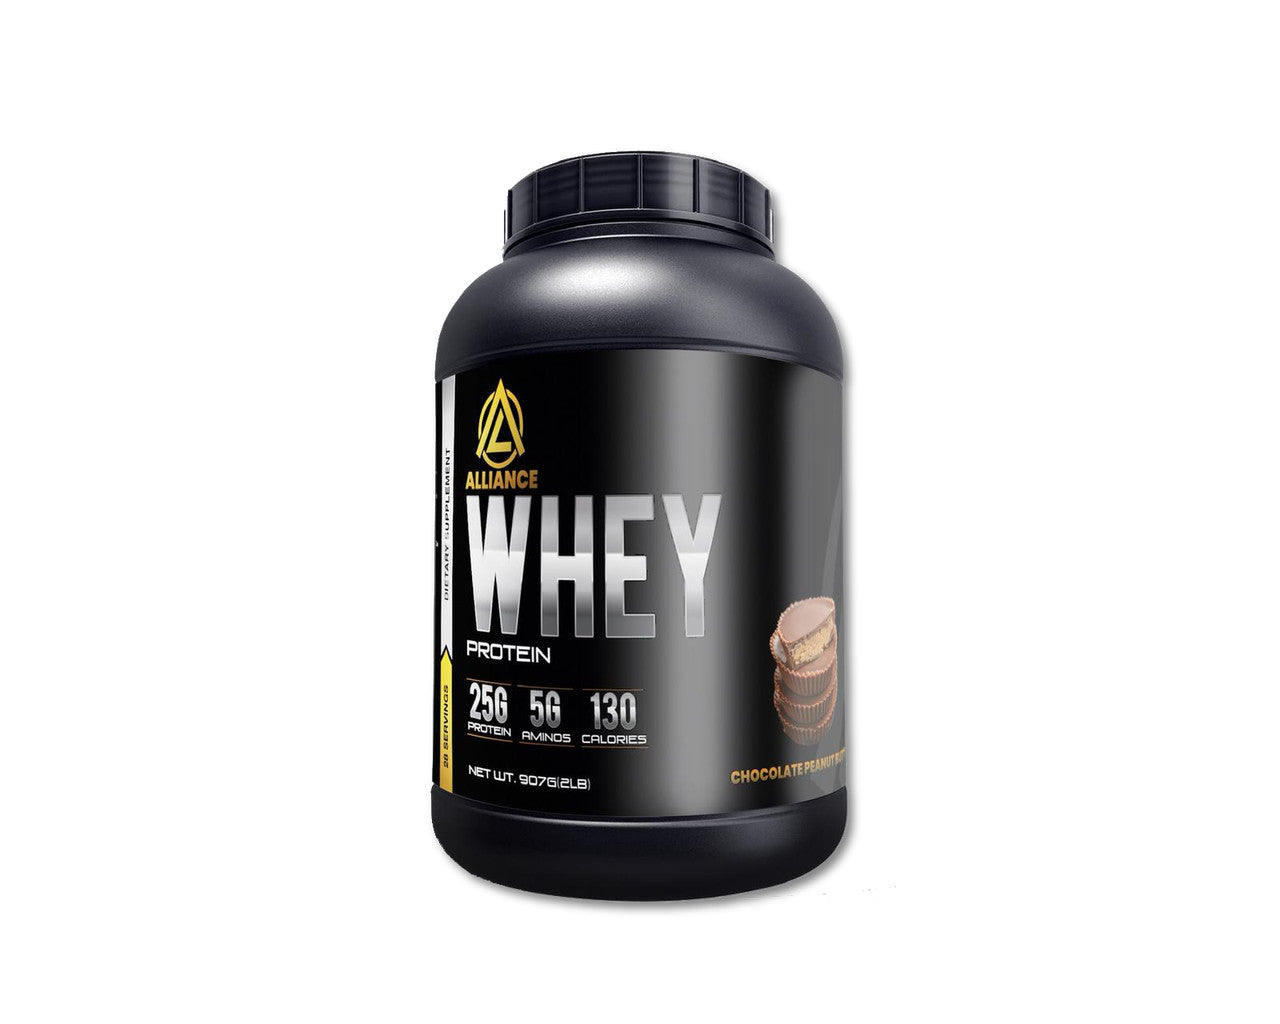 Whey Protein - Chocolate Peanut Butter